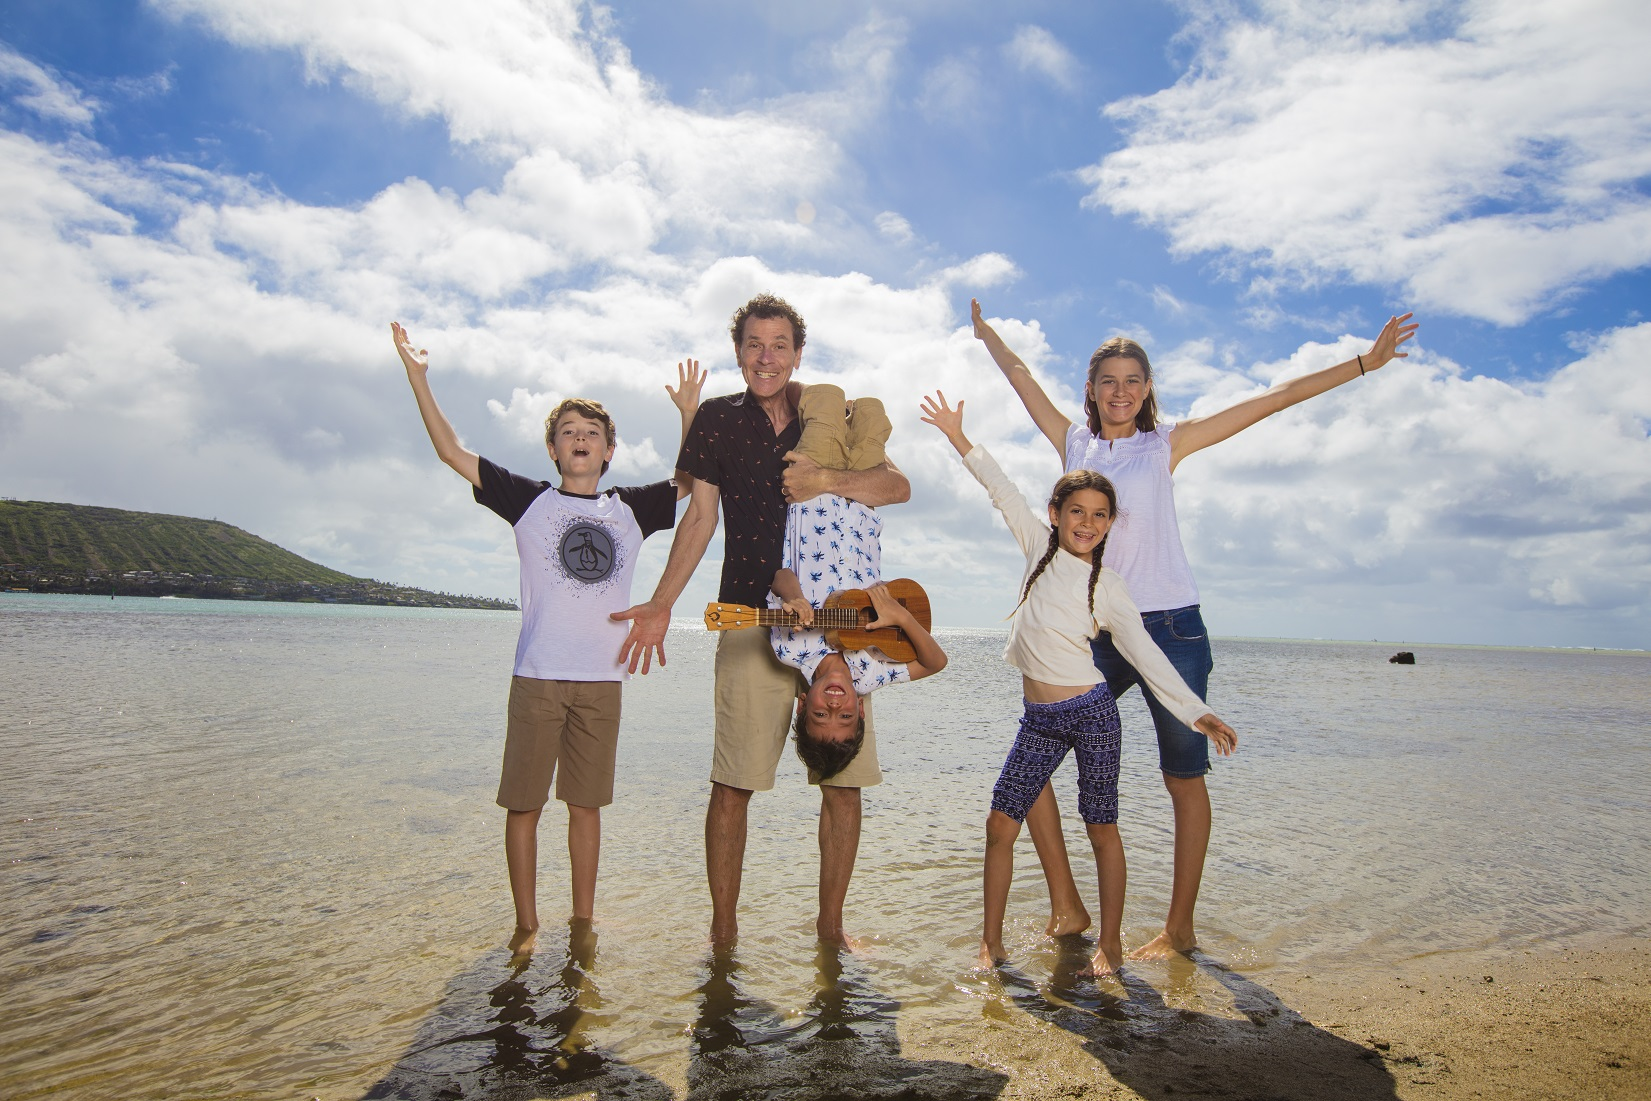 hawaii fun affordable family beach portrait